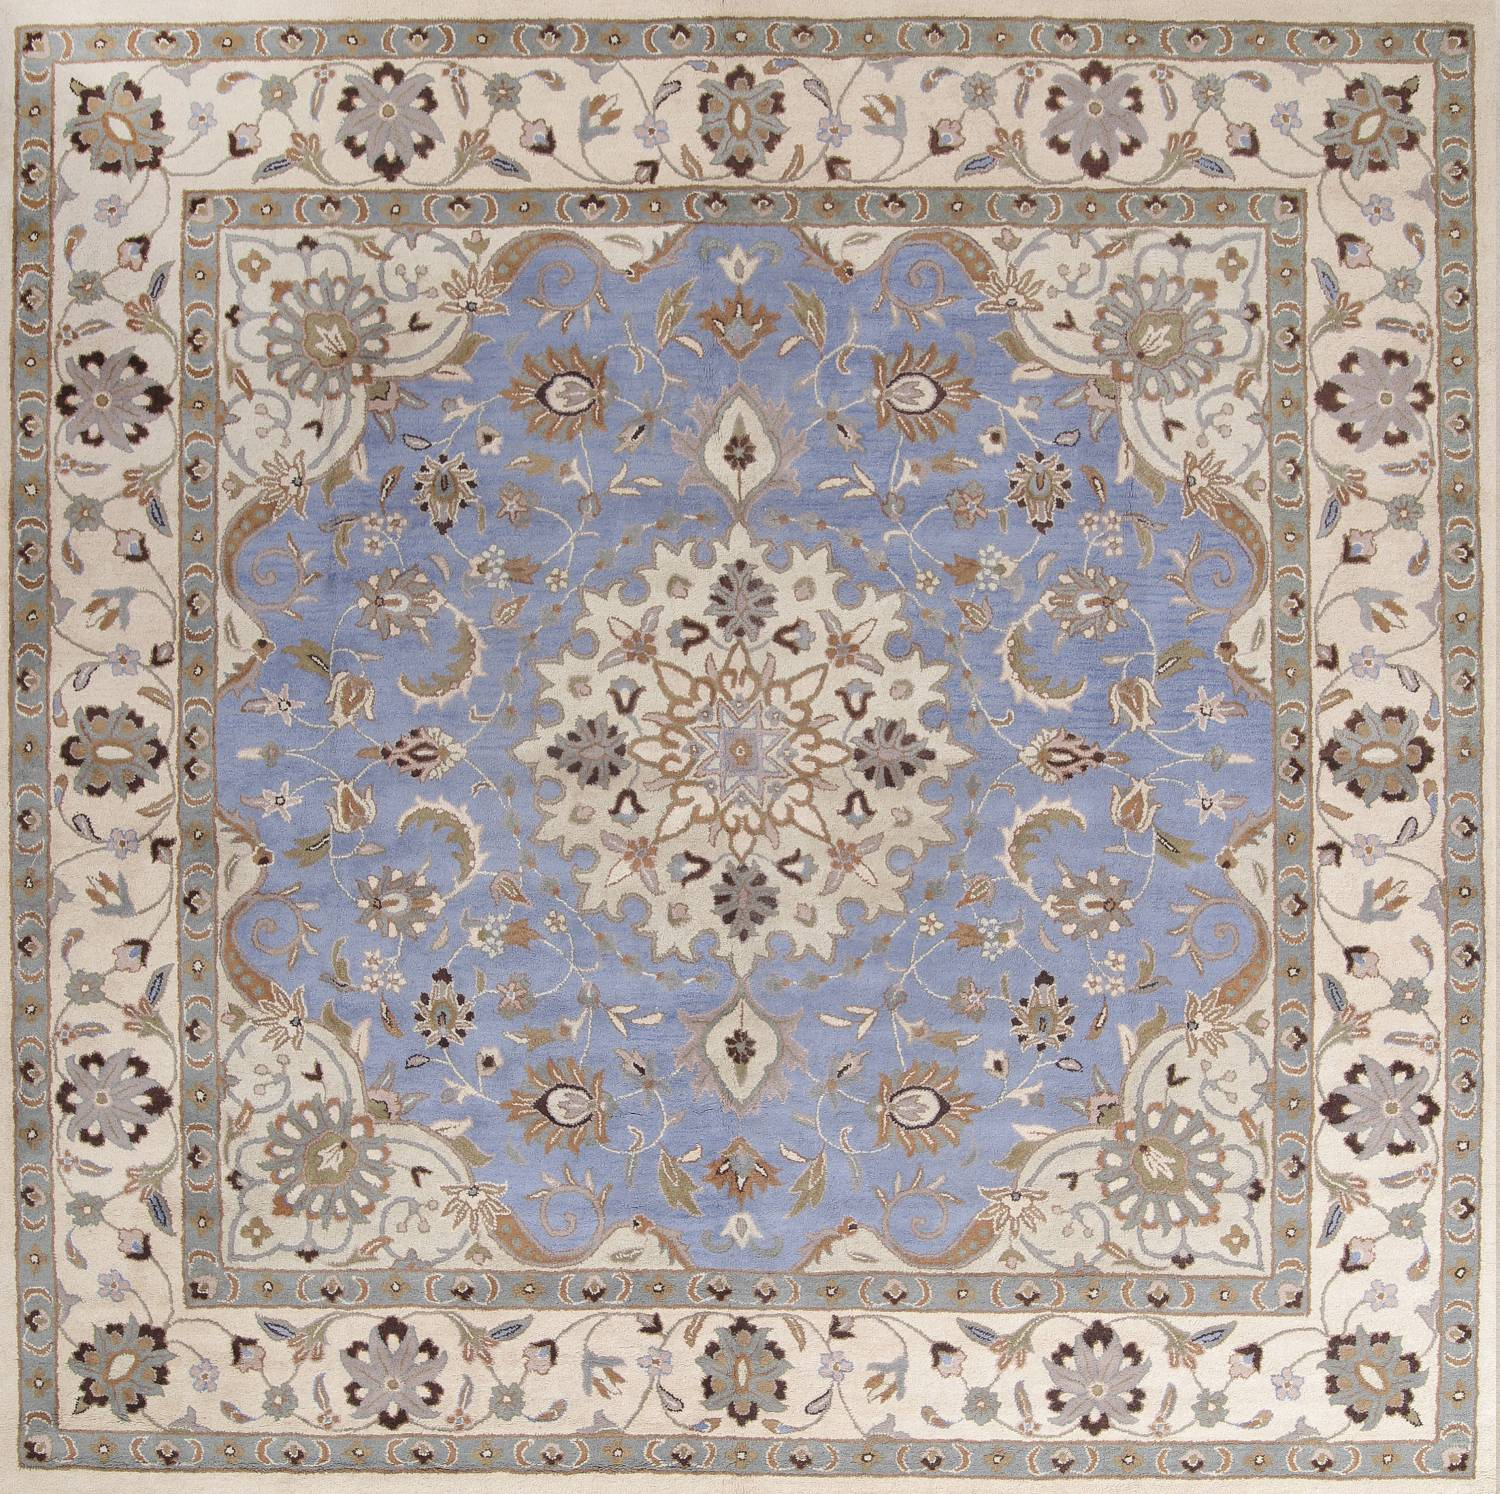 10x10 Square New Oushak Oriental Wool Area Rug: Light Blue Floral Square 10x10 Kashan Oriental Area Rug